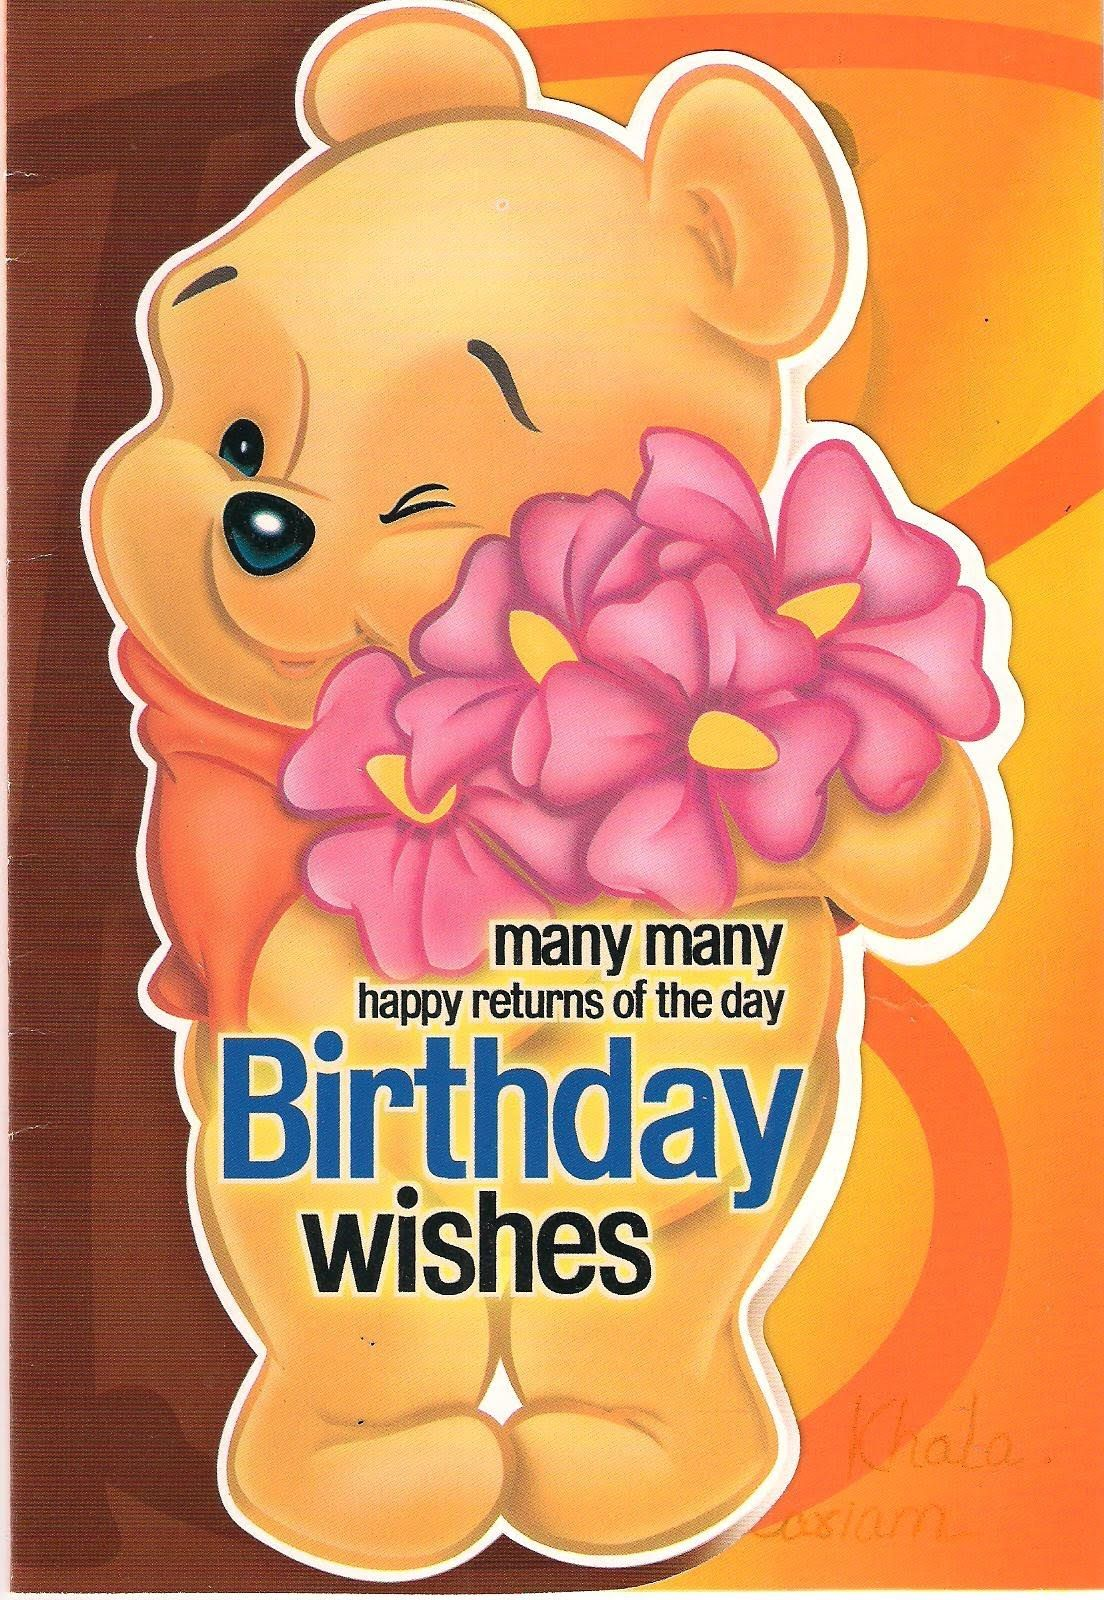 cute teddy bear happy birthday friend happy birthday friends forever wishes cute teddy bear happy birthday friend lovely teddy wish a happy birthday